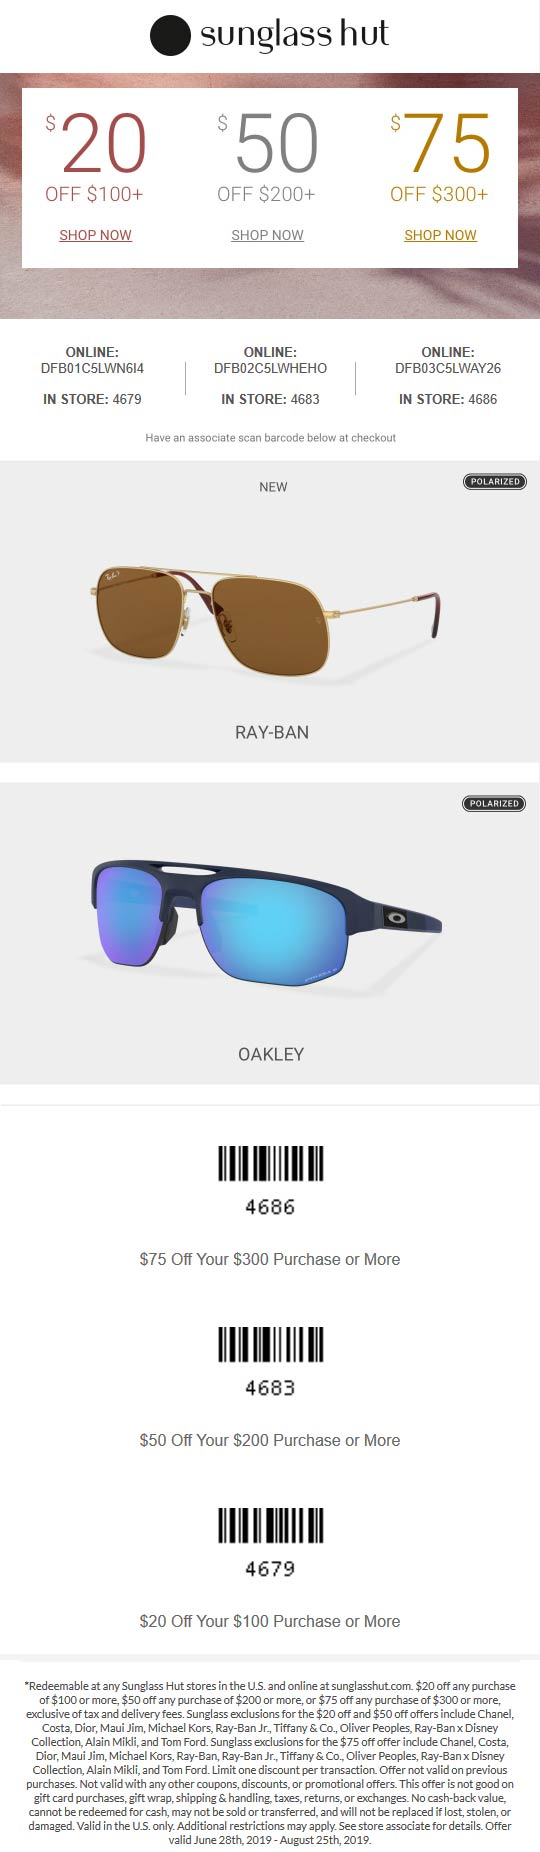 Sunglass Hut Coupon November 2019 $20 off $100 & more at Sunglass Hut, or online via promo code DFB01C5LWN6I4